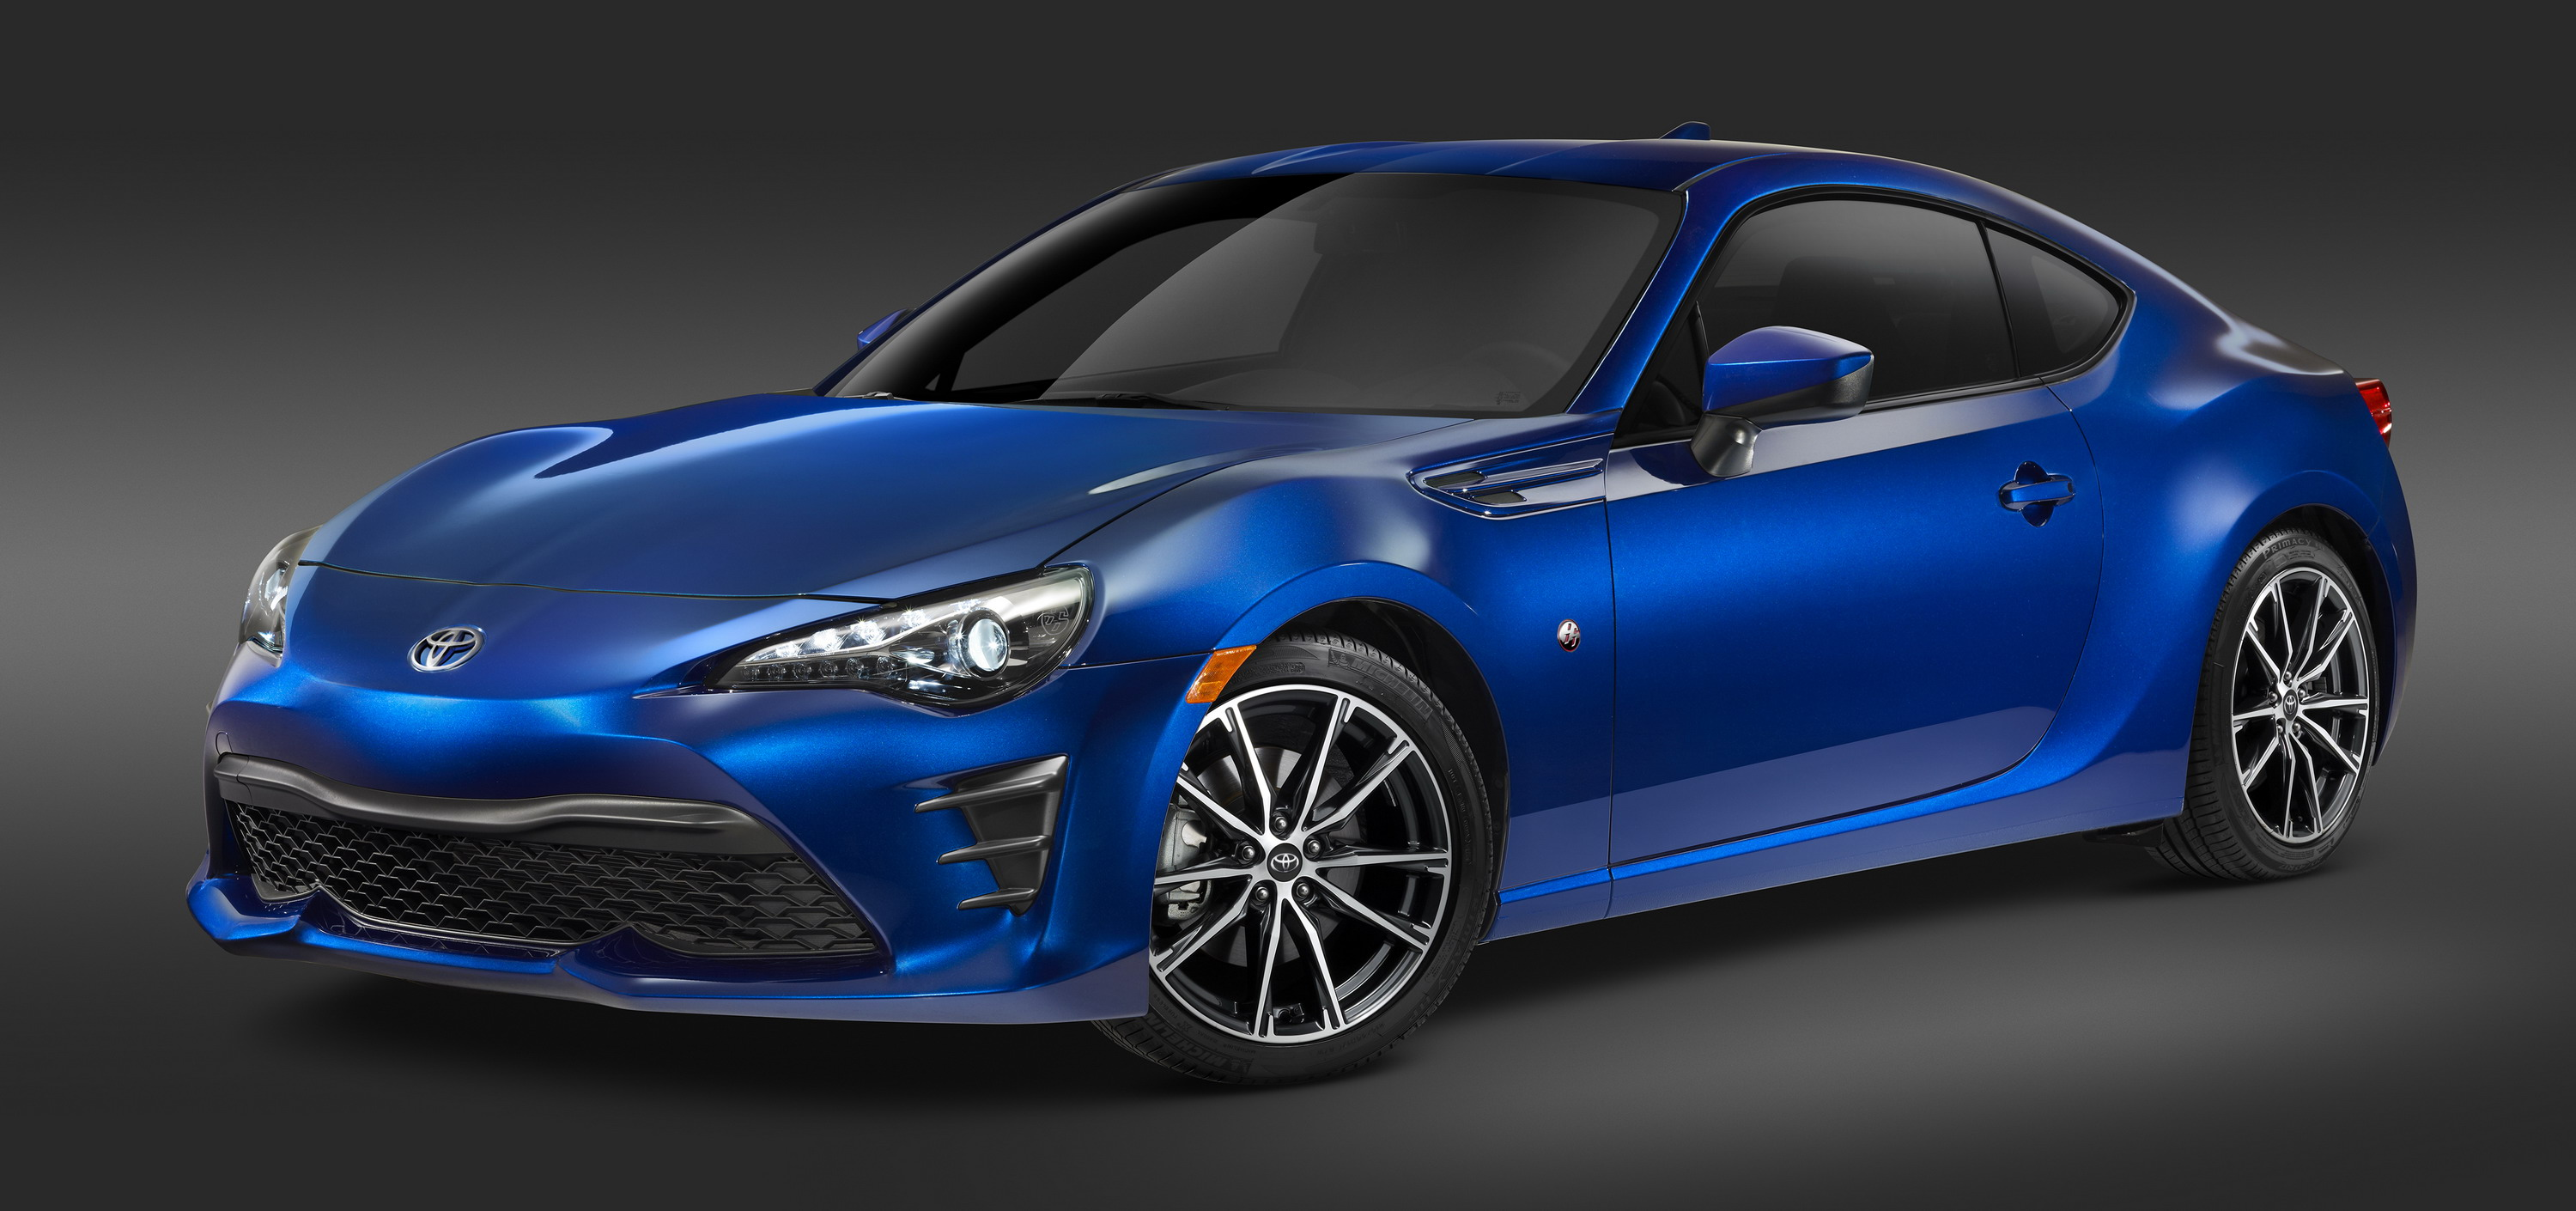 Chief Engineer Of The Toyota 86 And Subaru BRZ Says No Turbo For You - Not In This Generation, Buddy News @ Top Speed